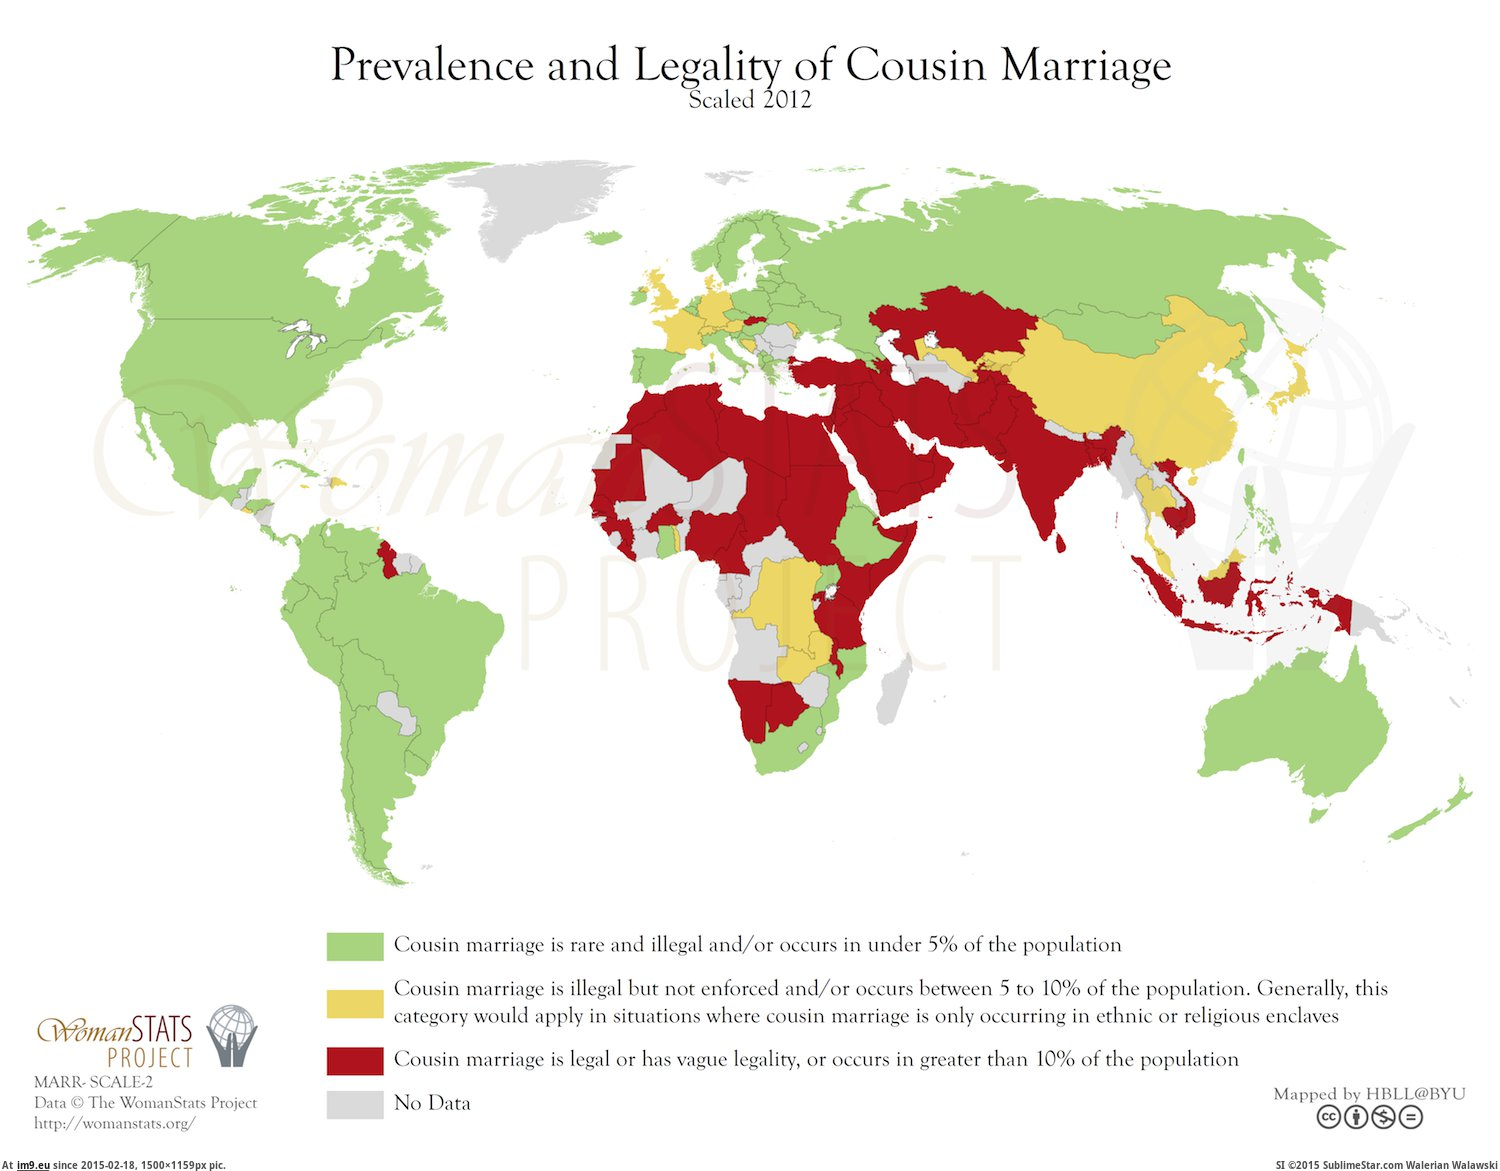 Prevalence & legality of cousin marriage